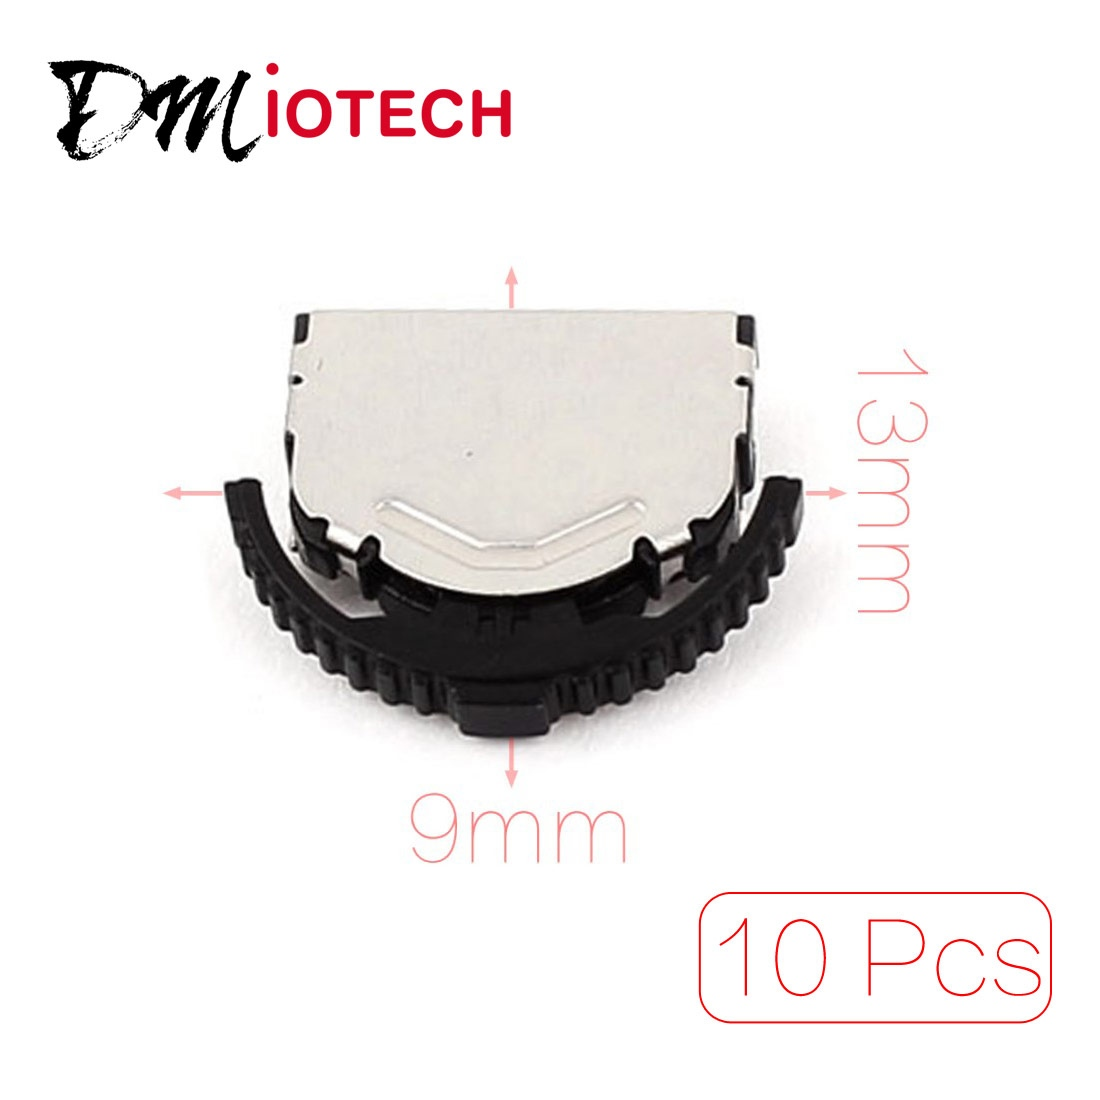 UXCELL 10 Pcs 3 Pin 5 Way Momentary Push Button Smd Smt Mini Tactile Switch momentary